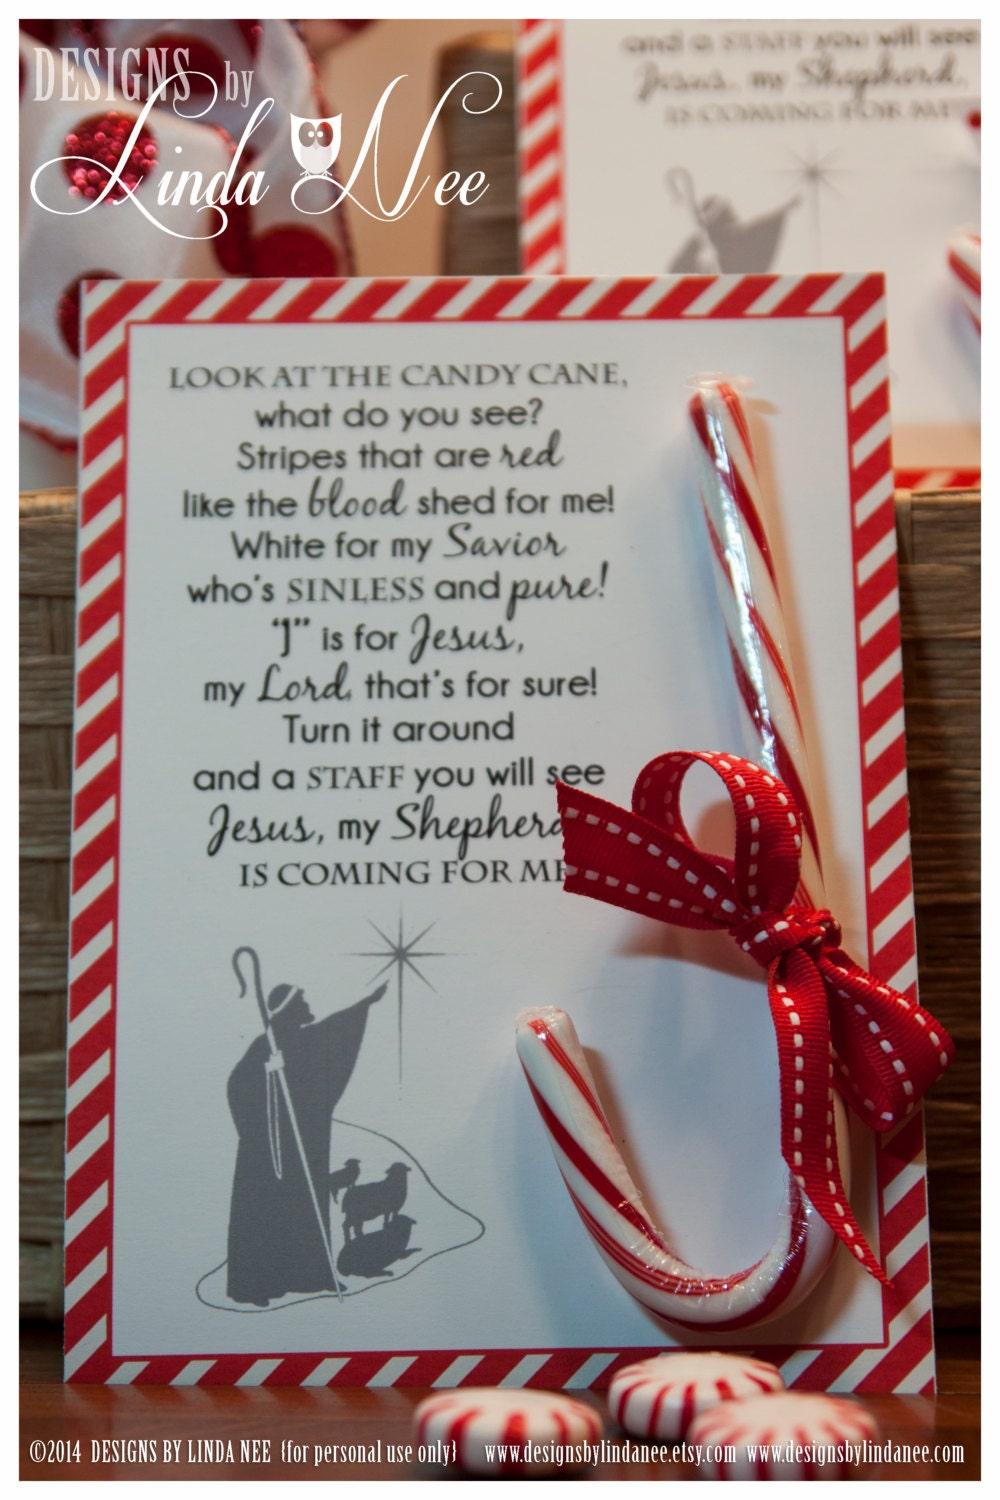 Legend of the Candy Cane Card for Witnessing at Christmas